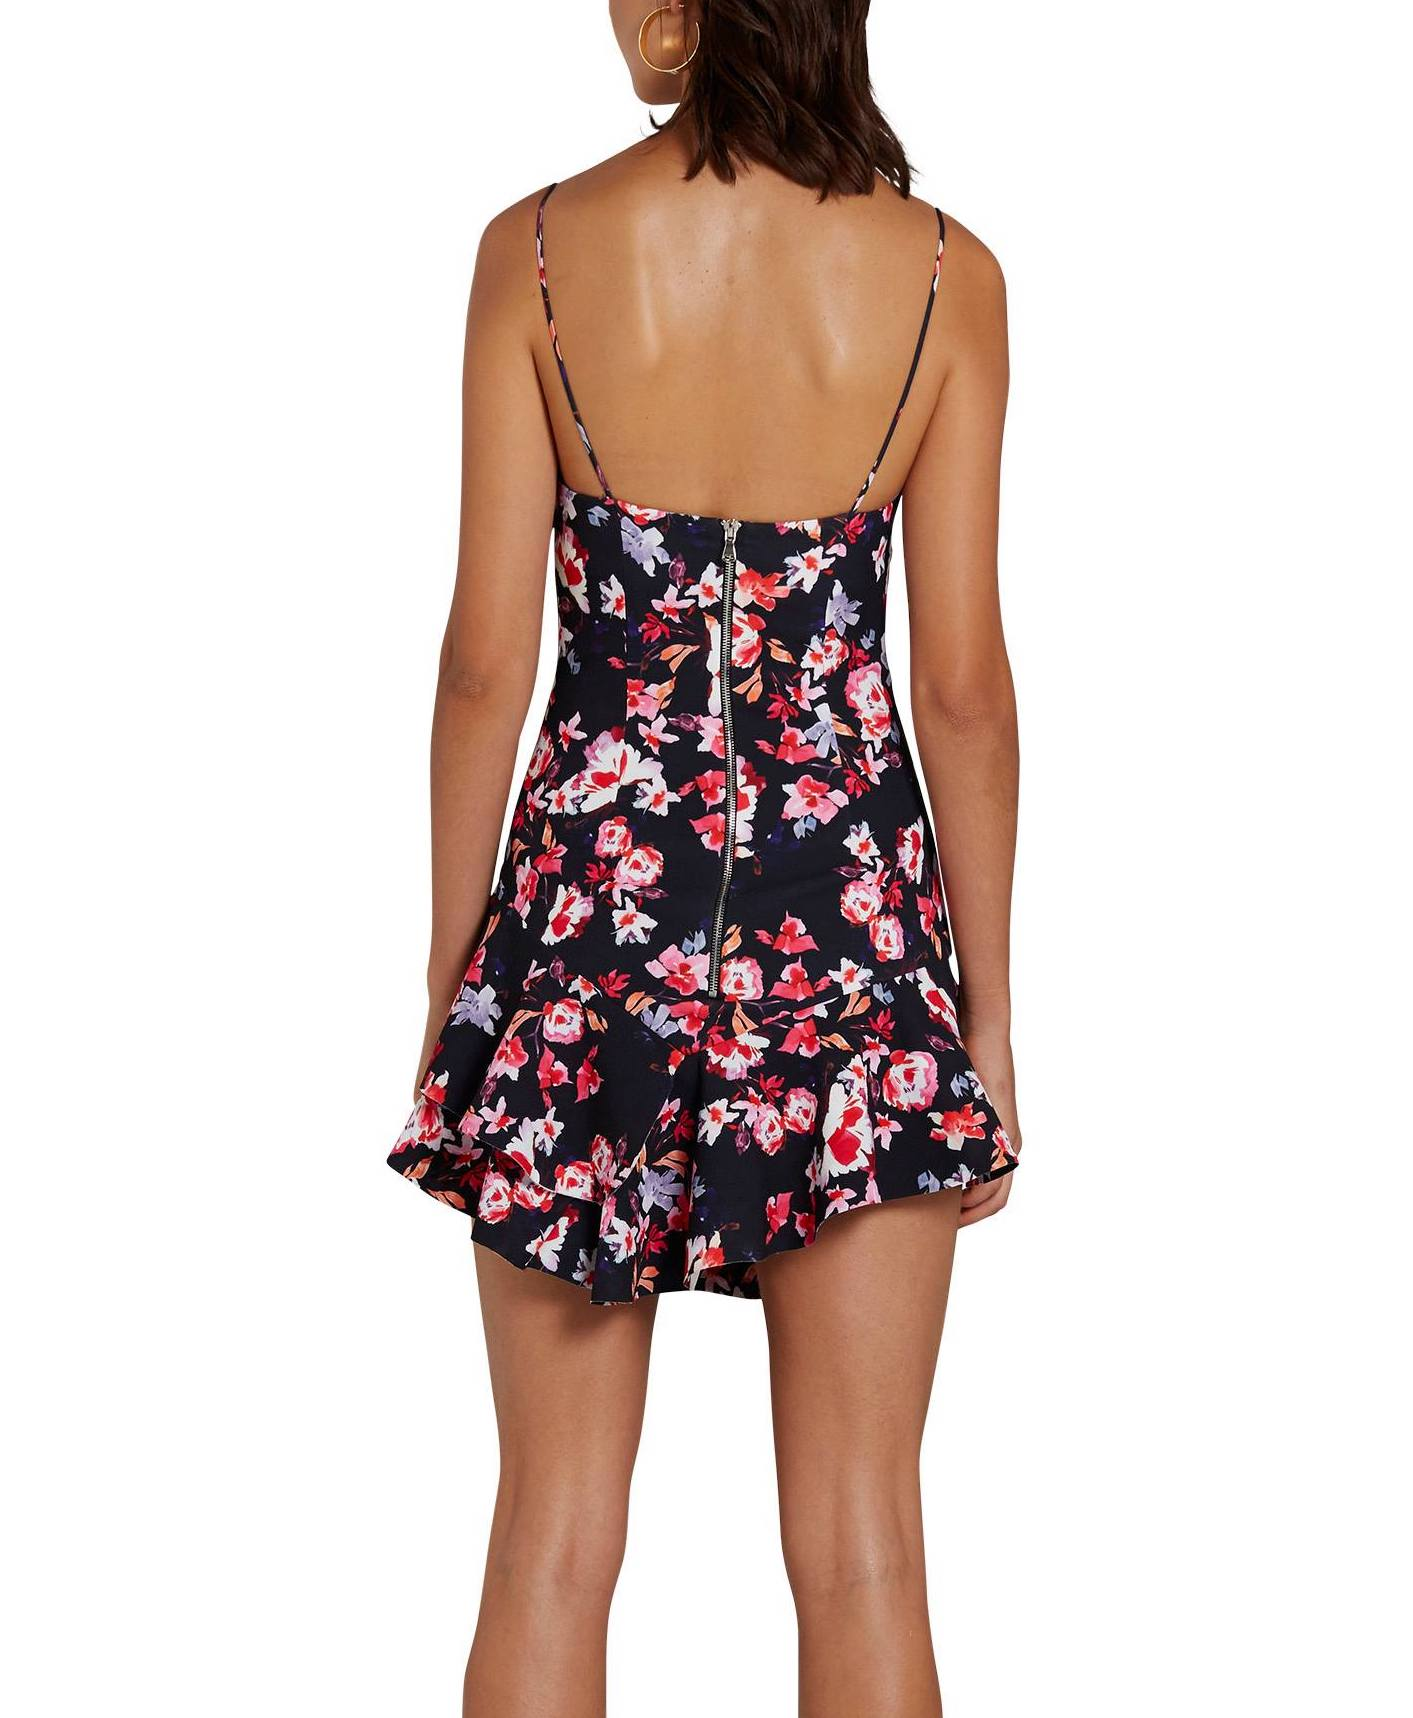 Bellflower Flip Mini Dress